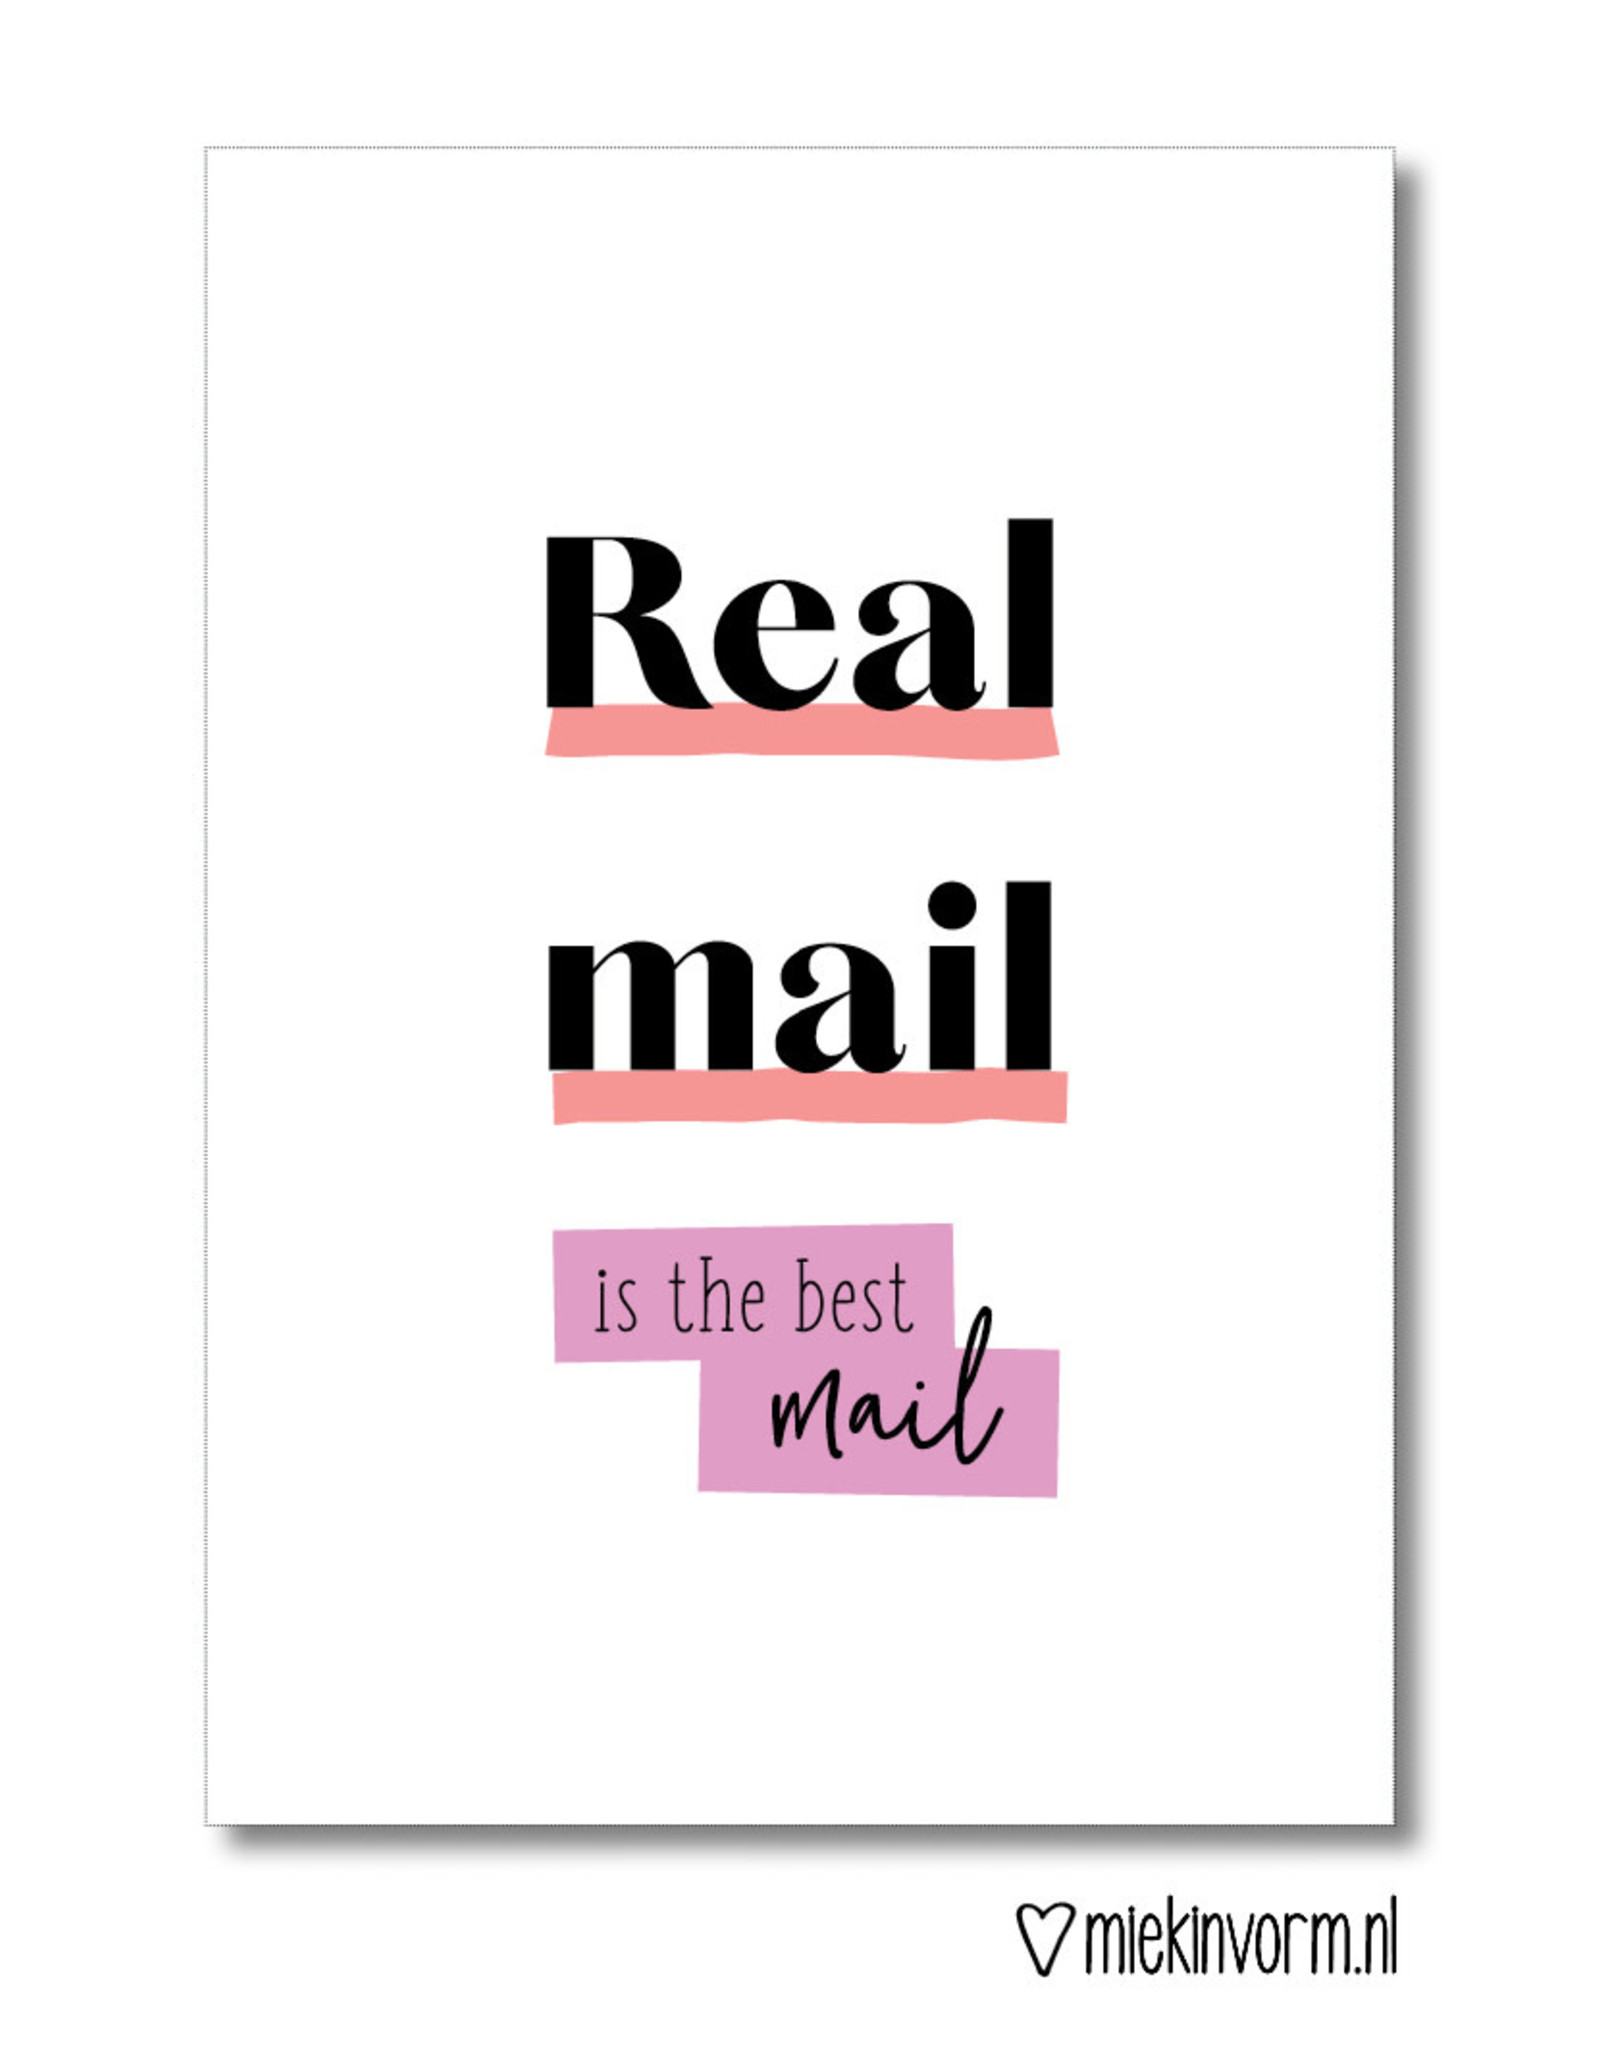 Miek in vorm kaart a6 miek in vorm: real mail is the best mail